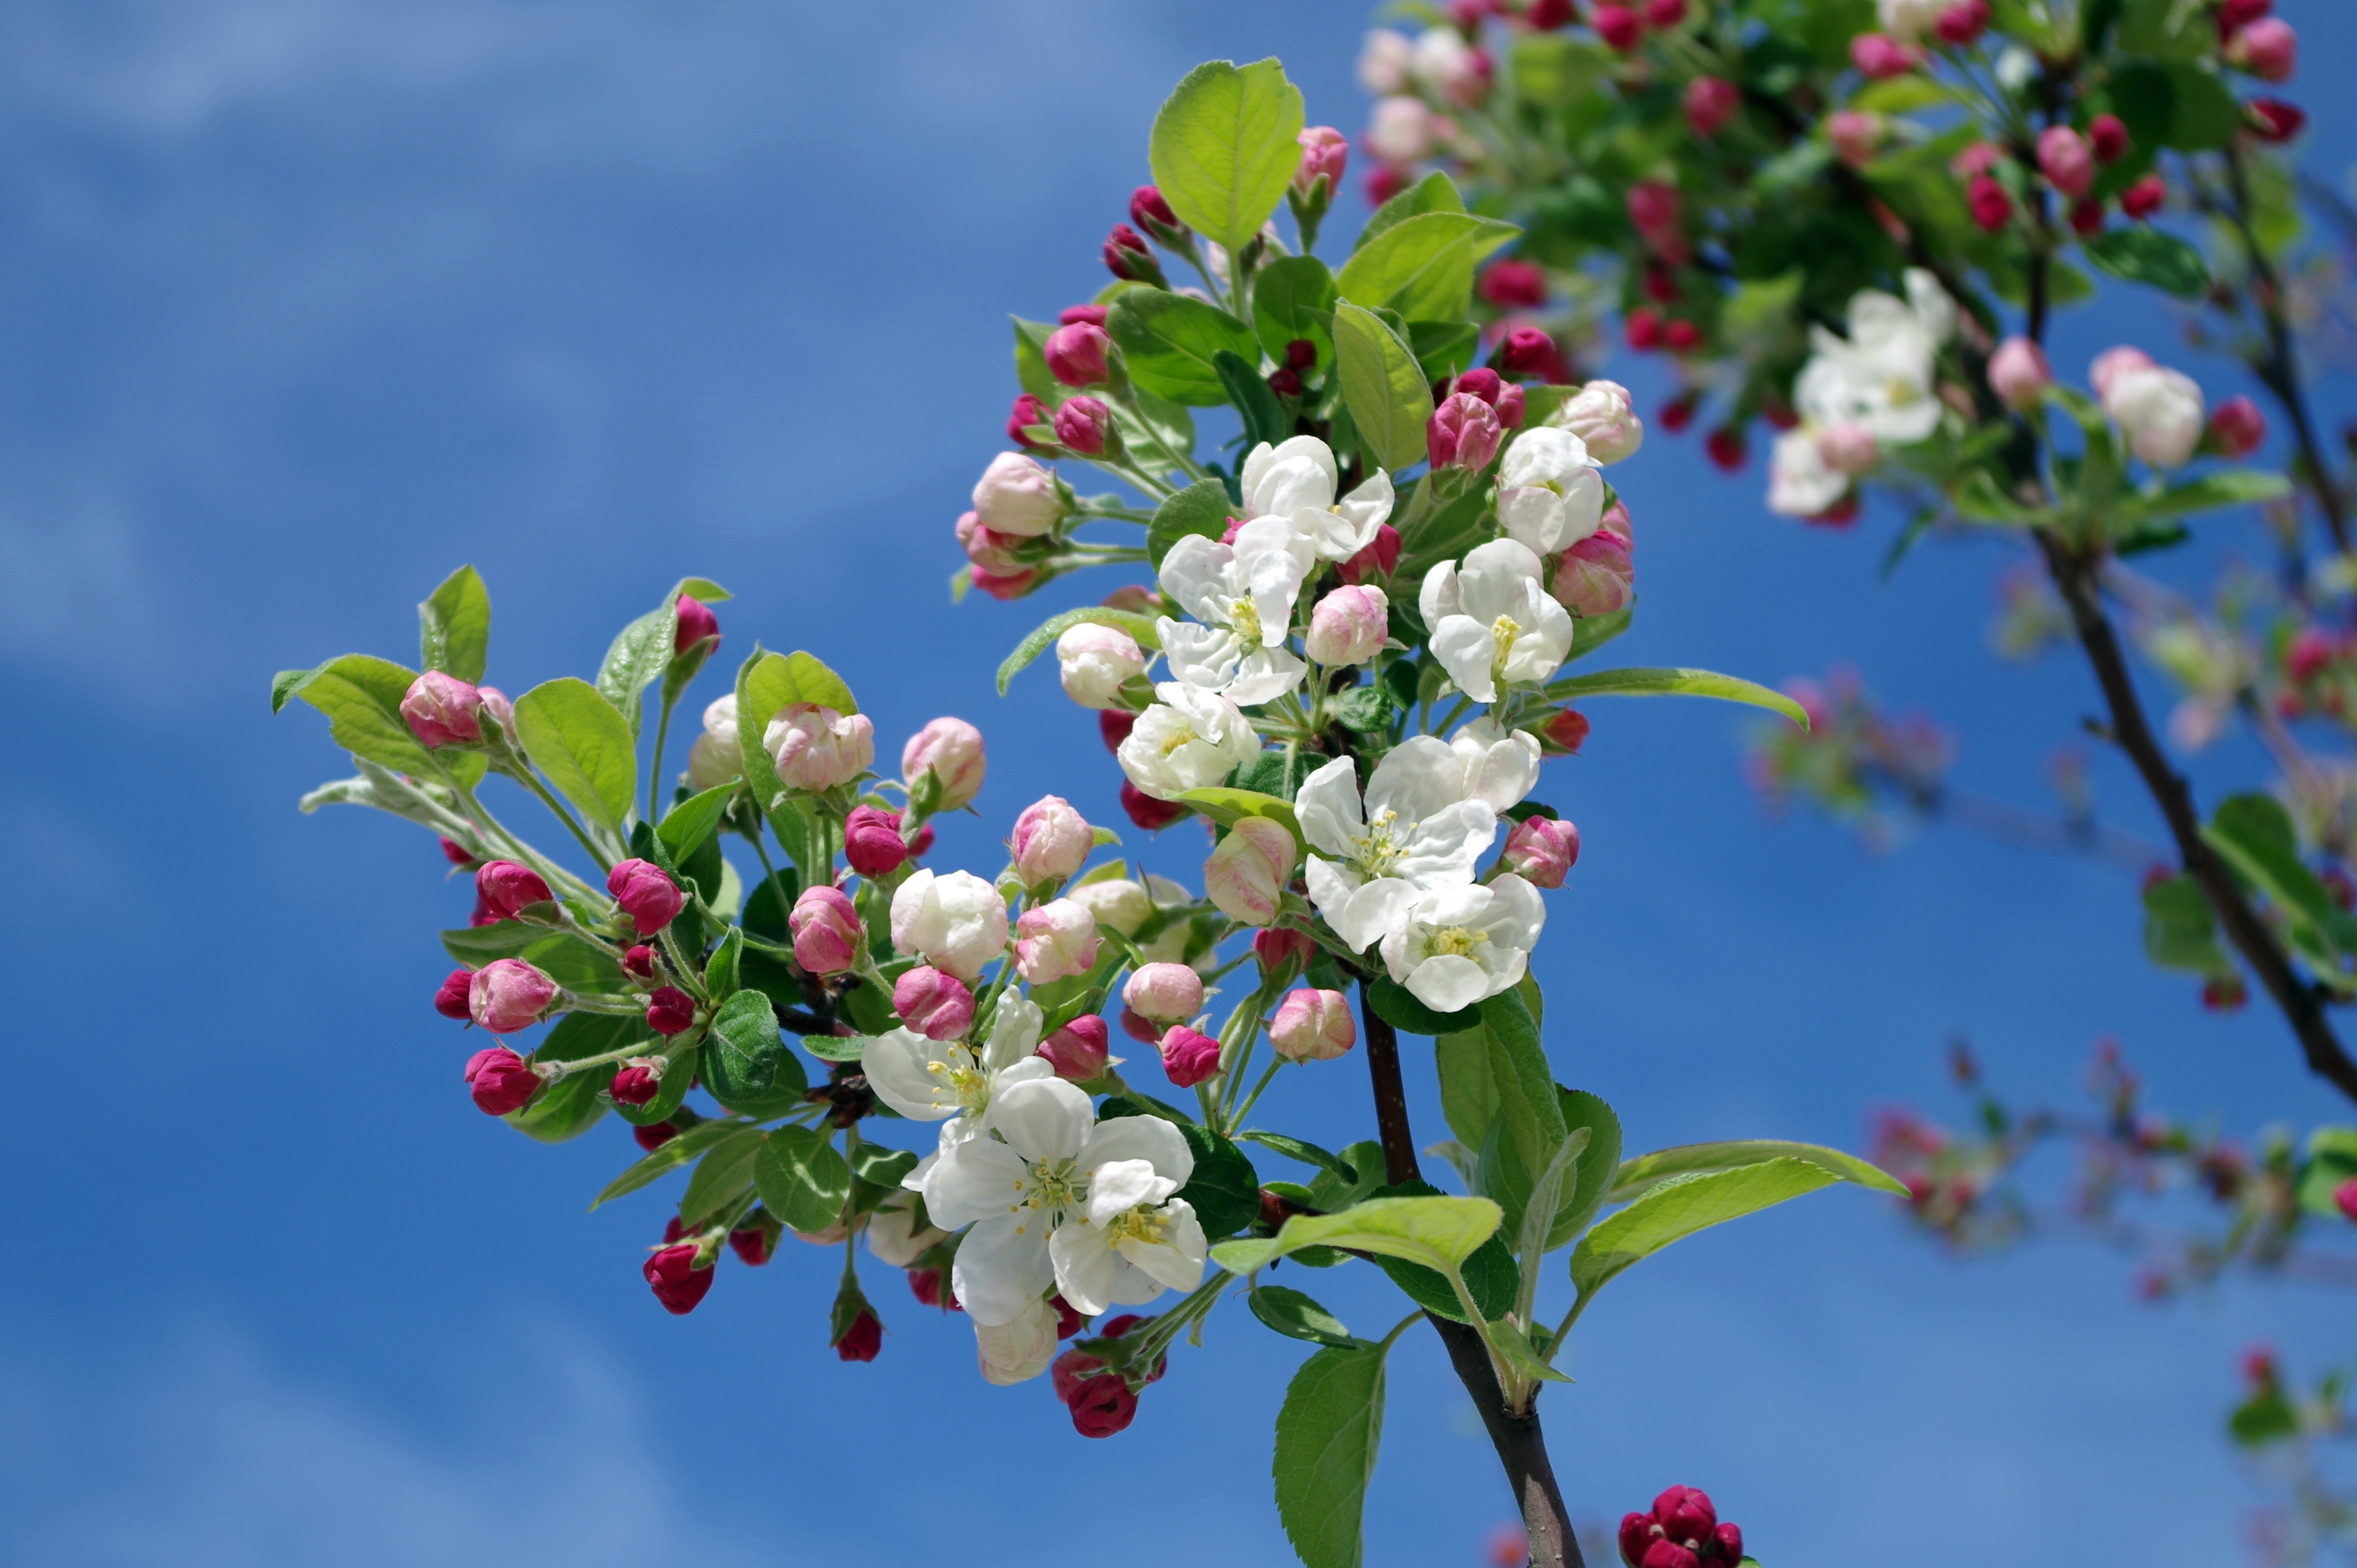 Free Photo White Flowers On Black Tree Branch Under Sky During